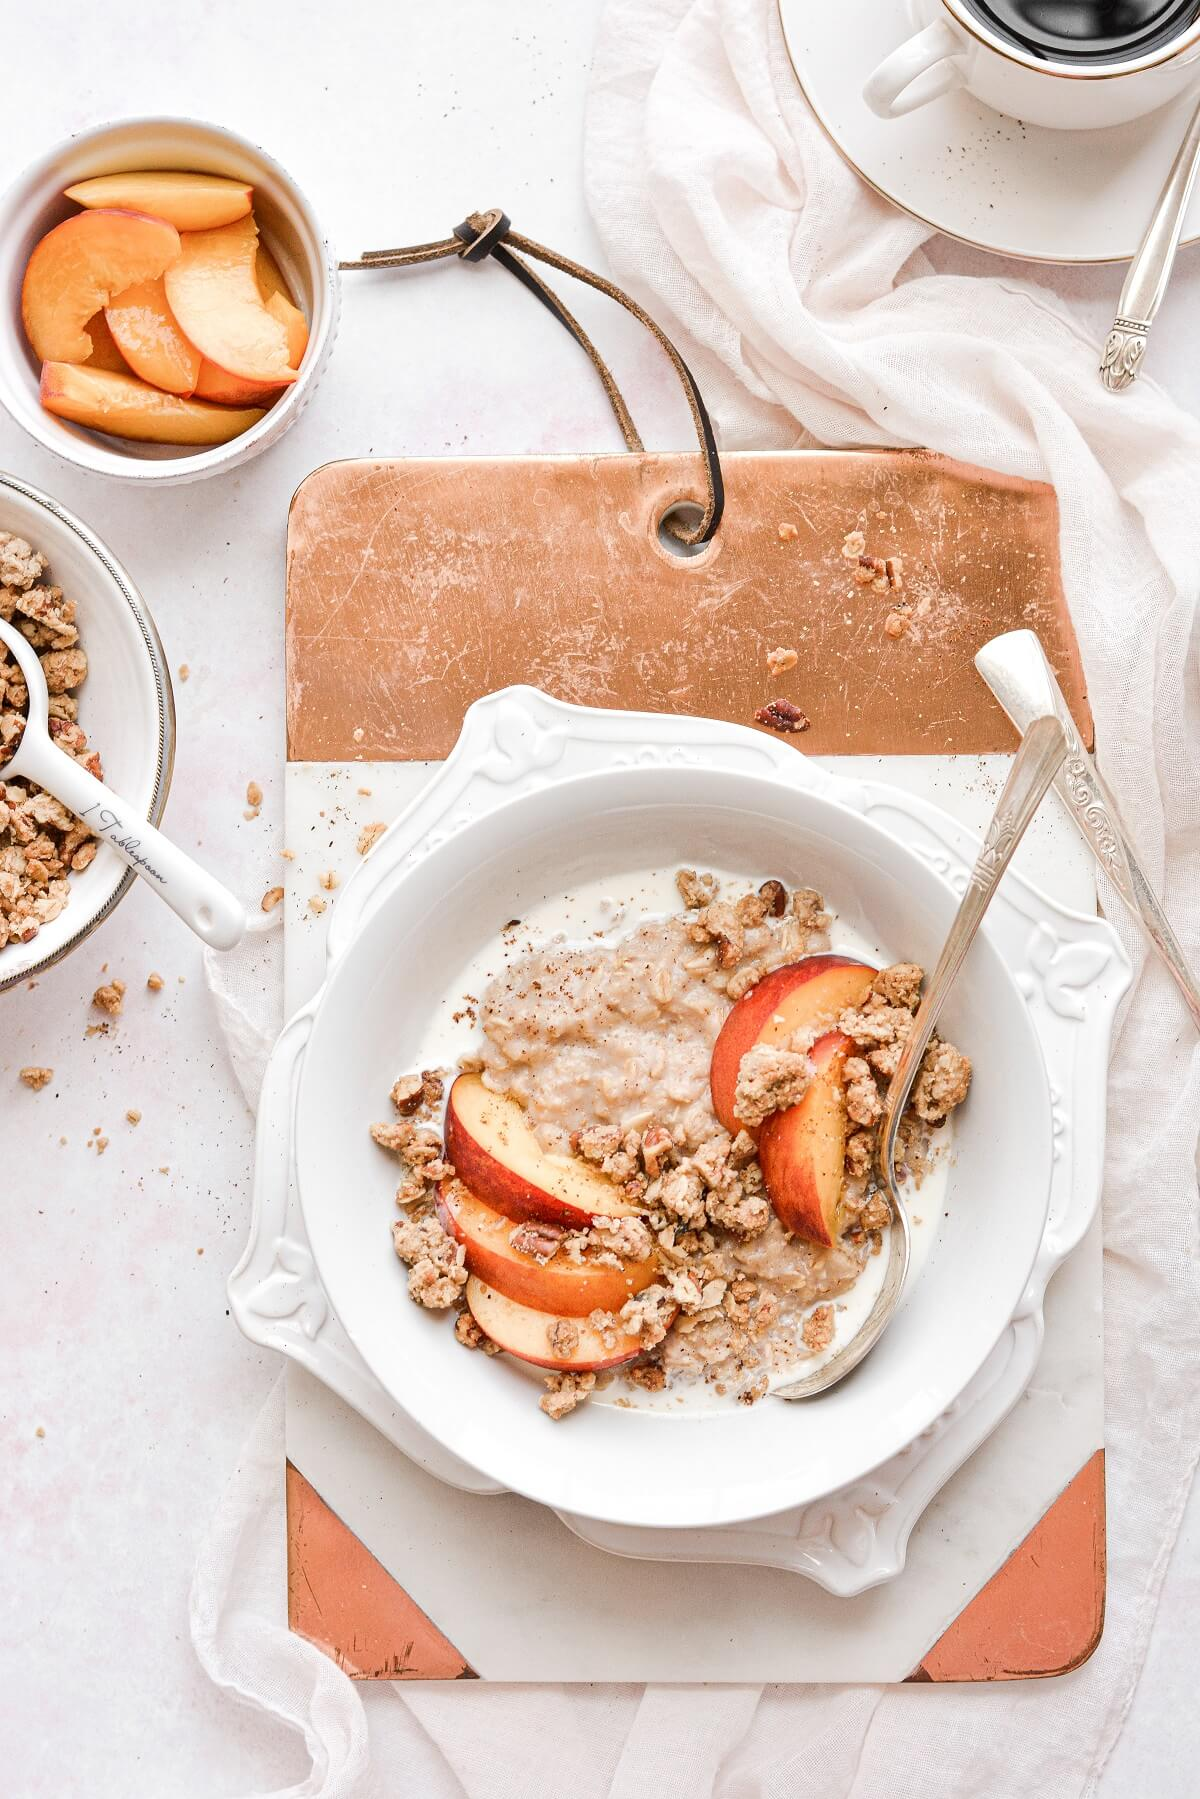 Peach crisp oatmeal, next to a bowl of sliced peaches and a bowl of crumble topping.